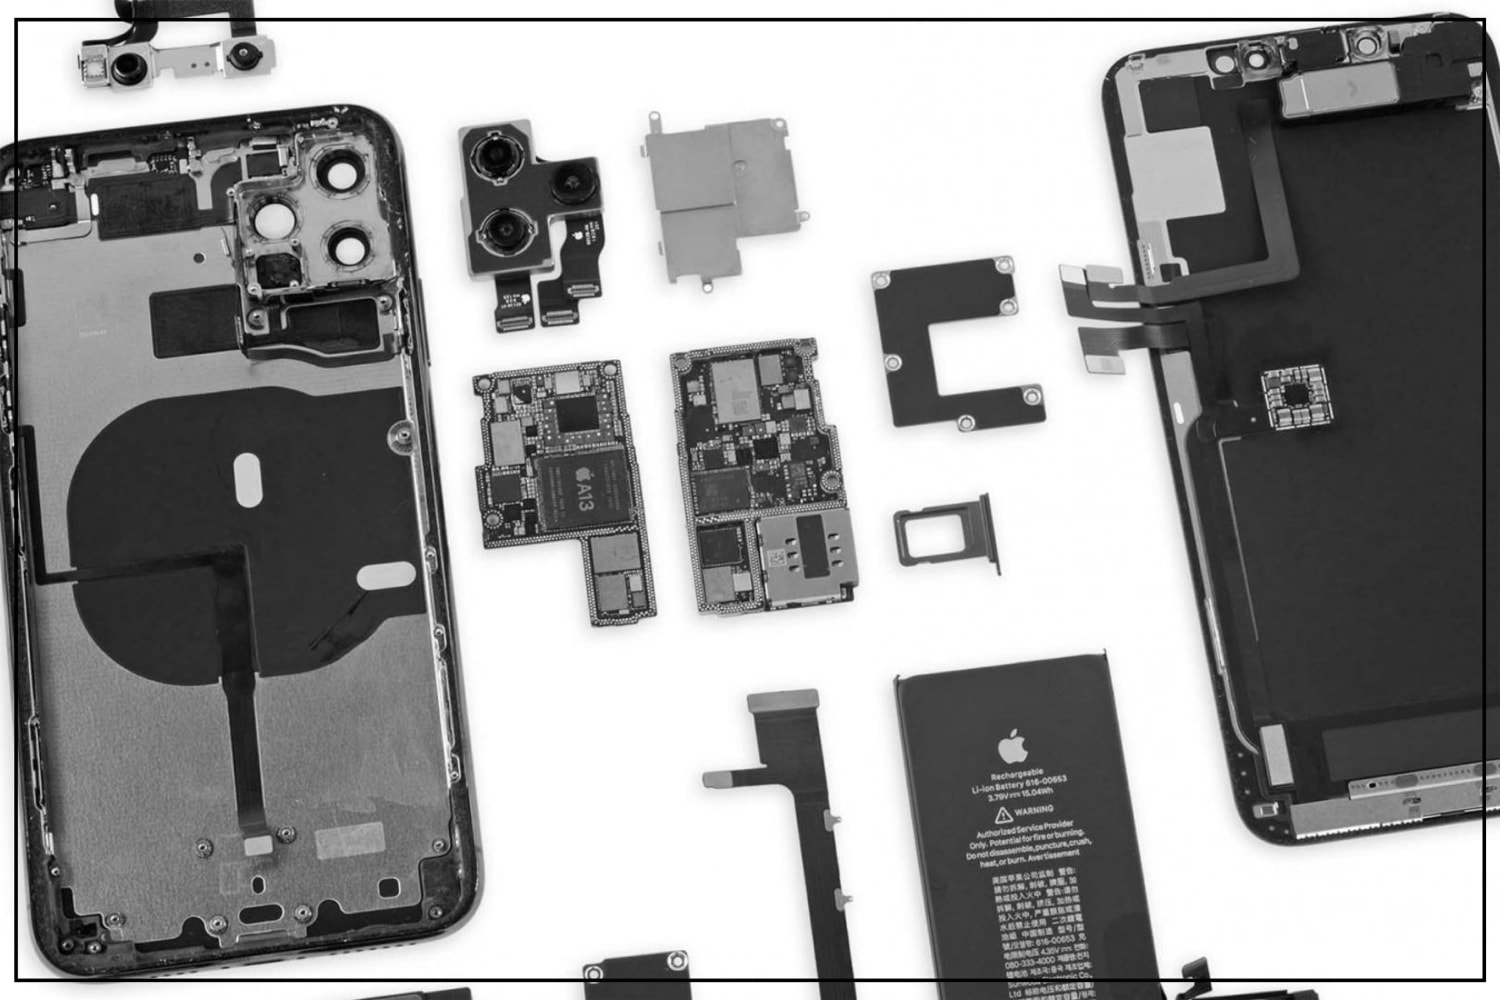 insufficient-supply-of-iphone-components-apple-compensating-with-ipad-parts-20201105-1